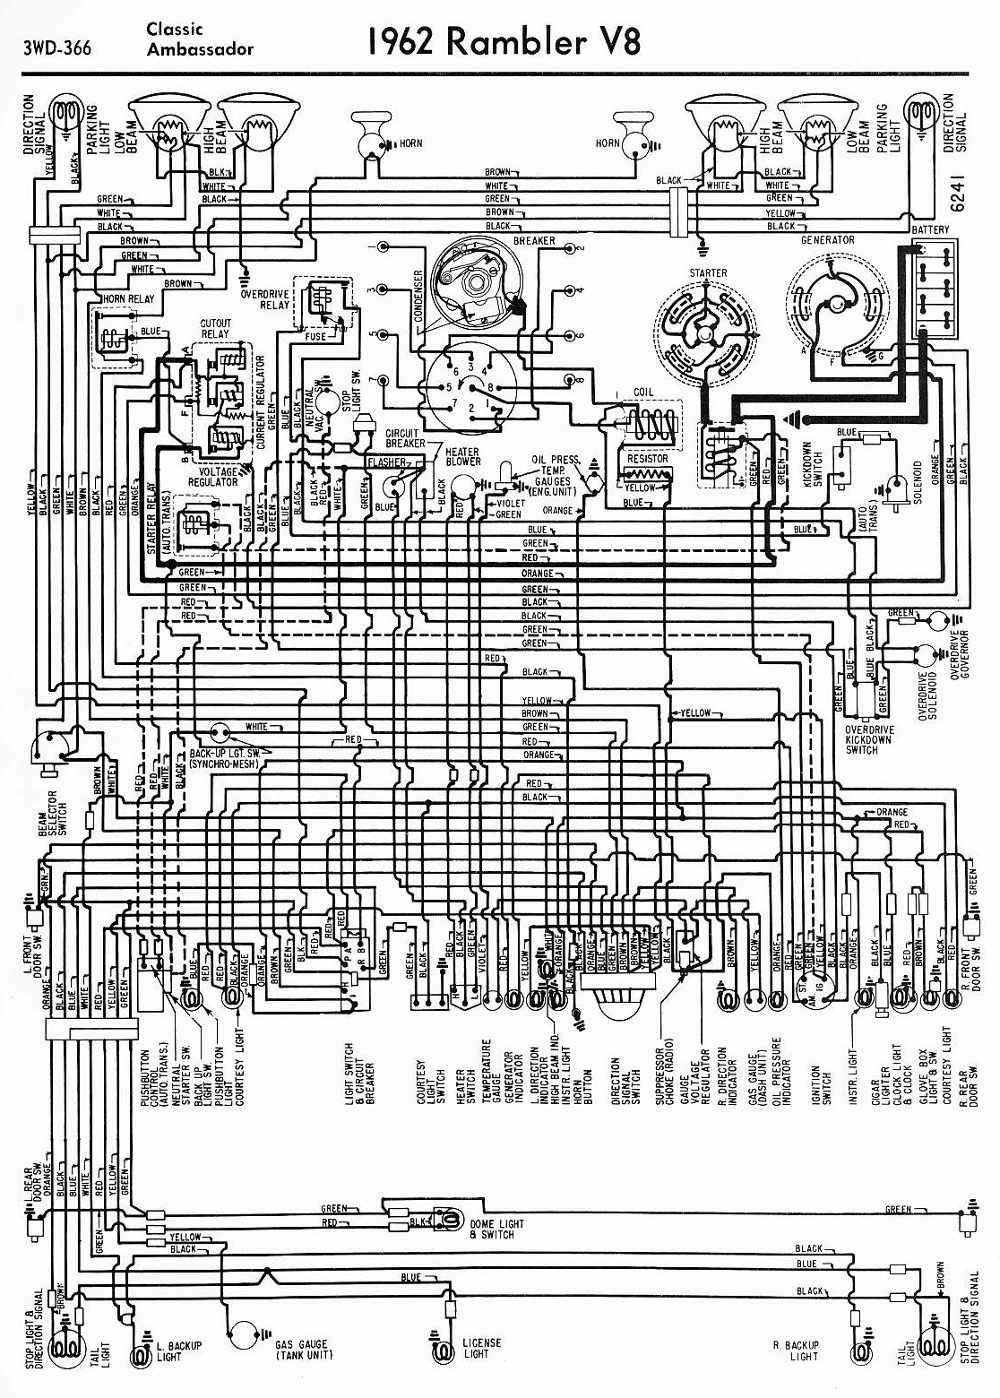 medium resolution of 1969 amc javelin wiring diagram basic electronics wiring diagram plymouth satellite amc javelin wiring schematic